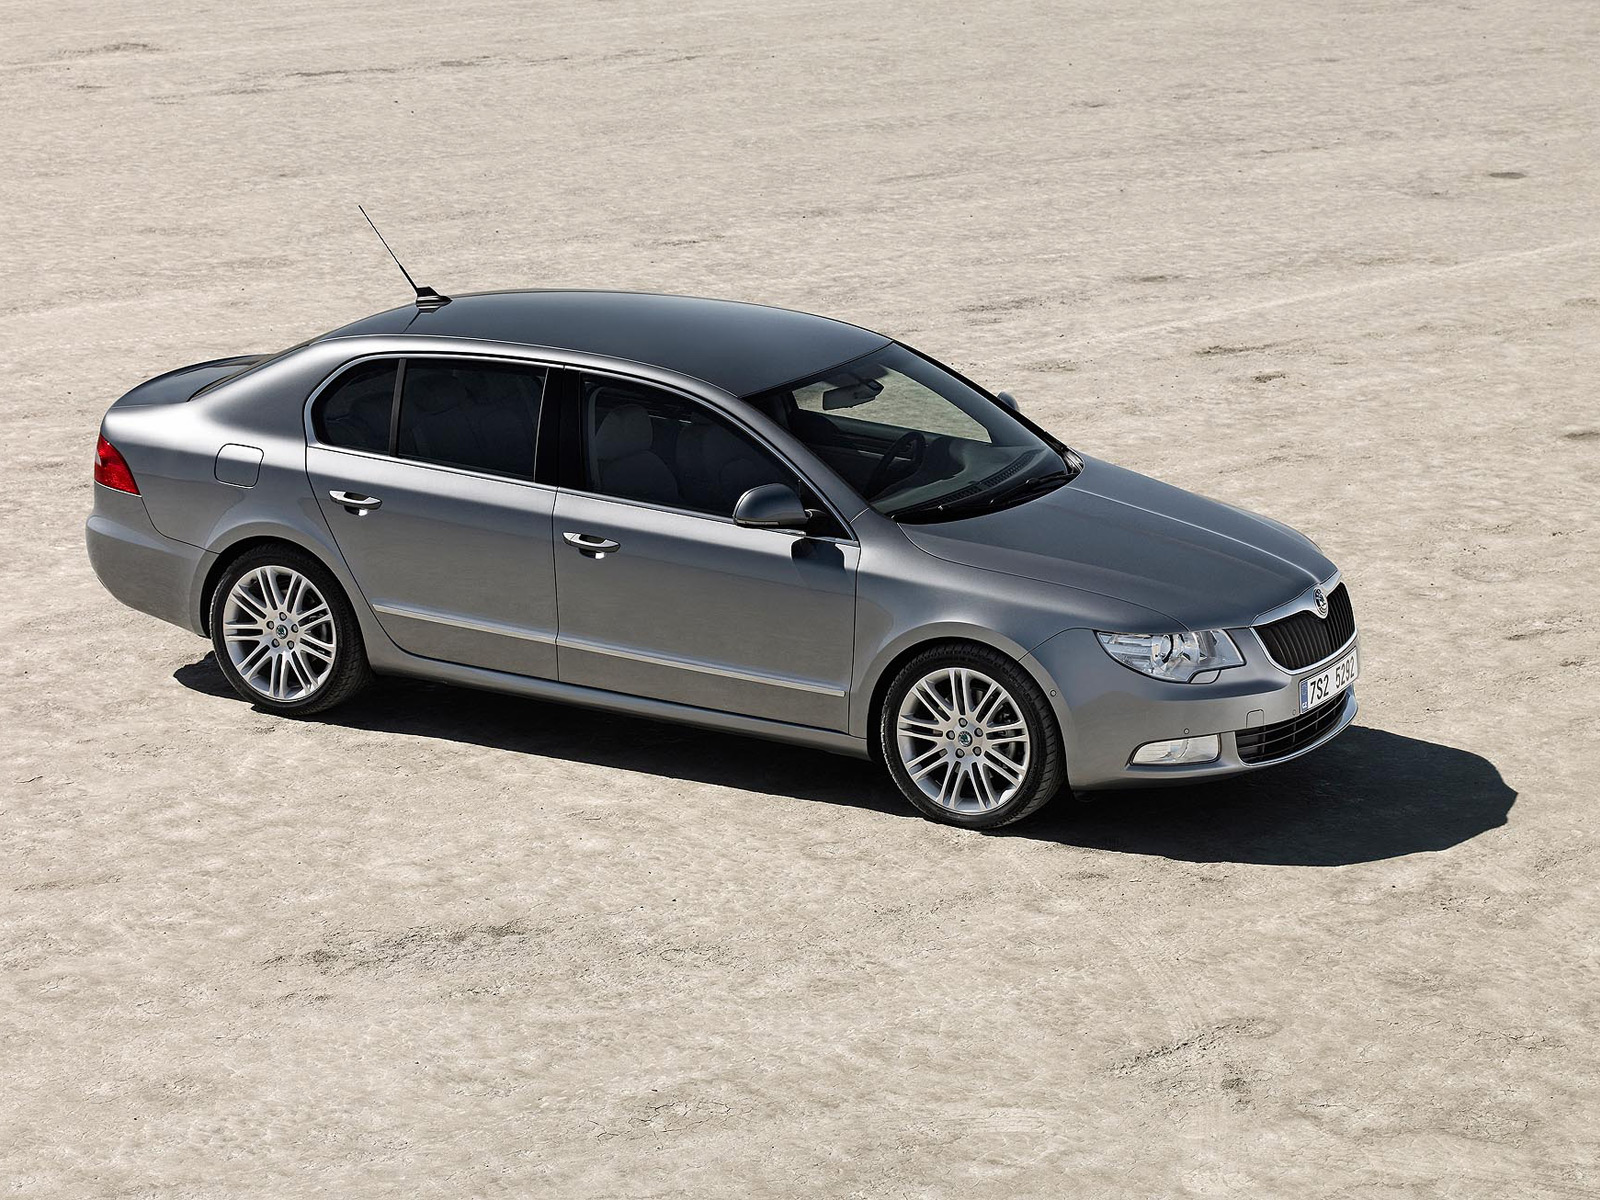 Skoda Superb image #6